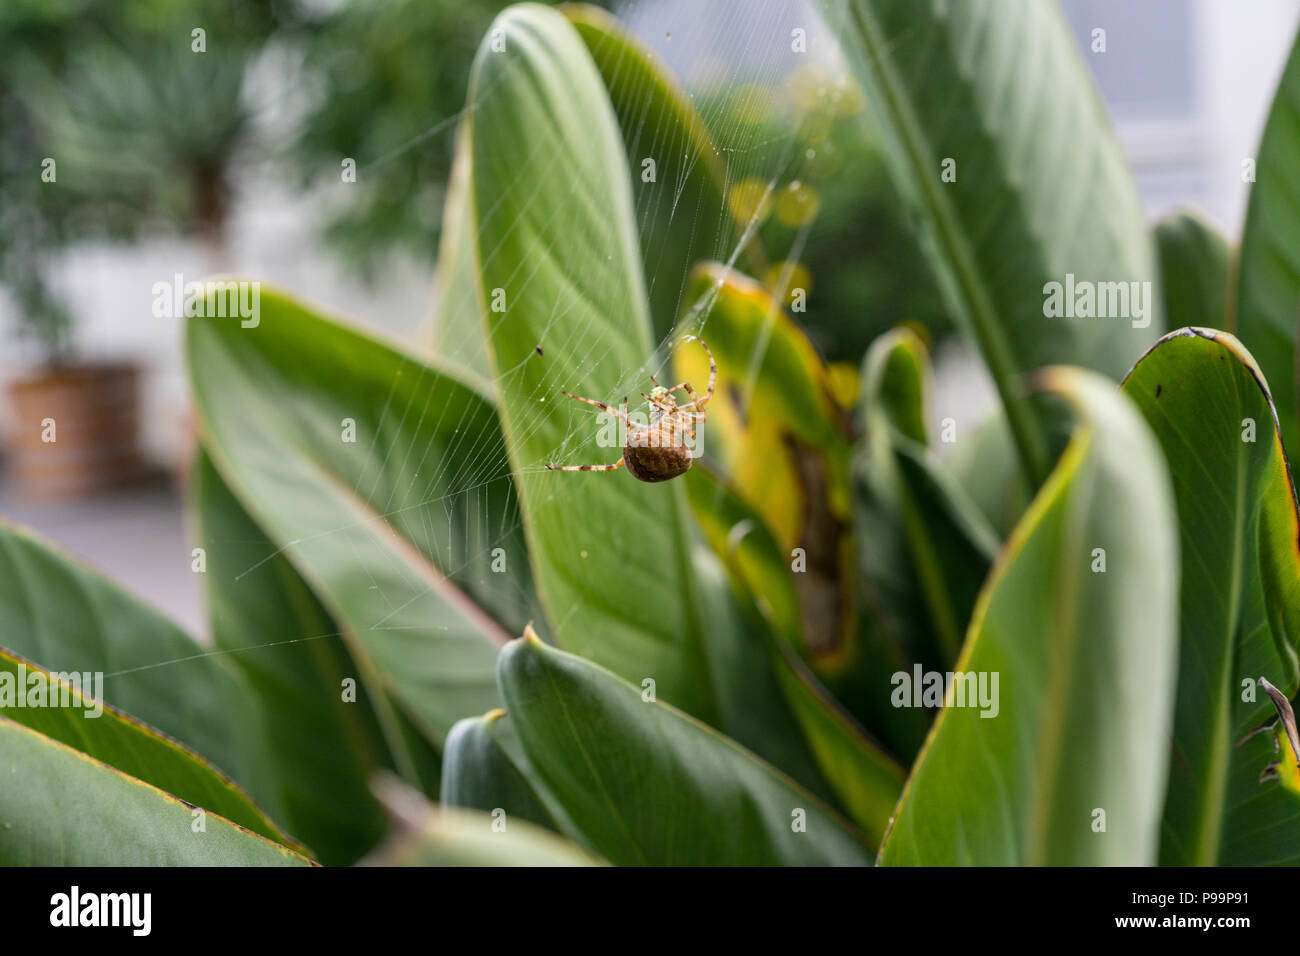 big spider sitting in web in plant close up macro with prey in net - Stock Image